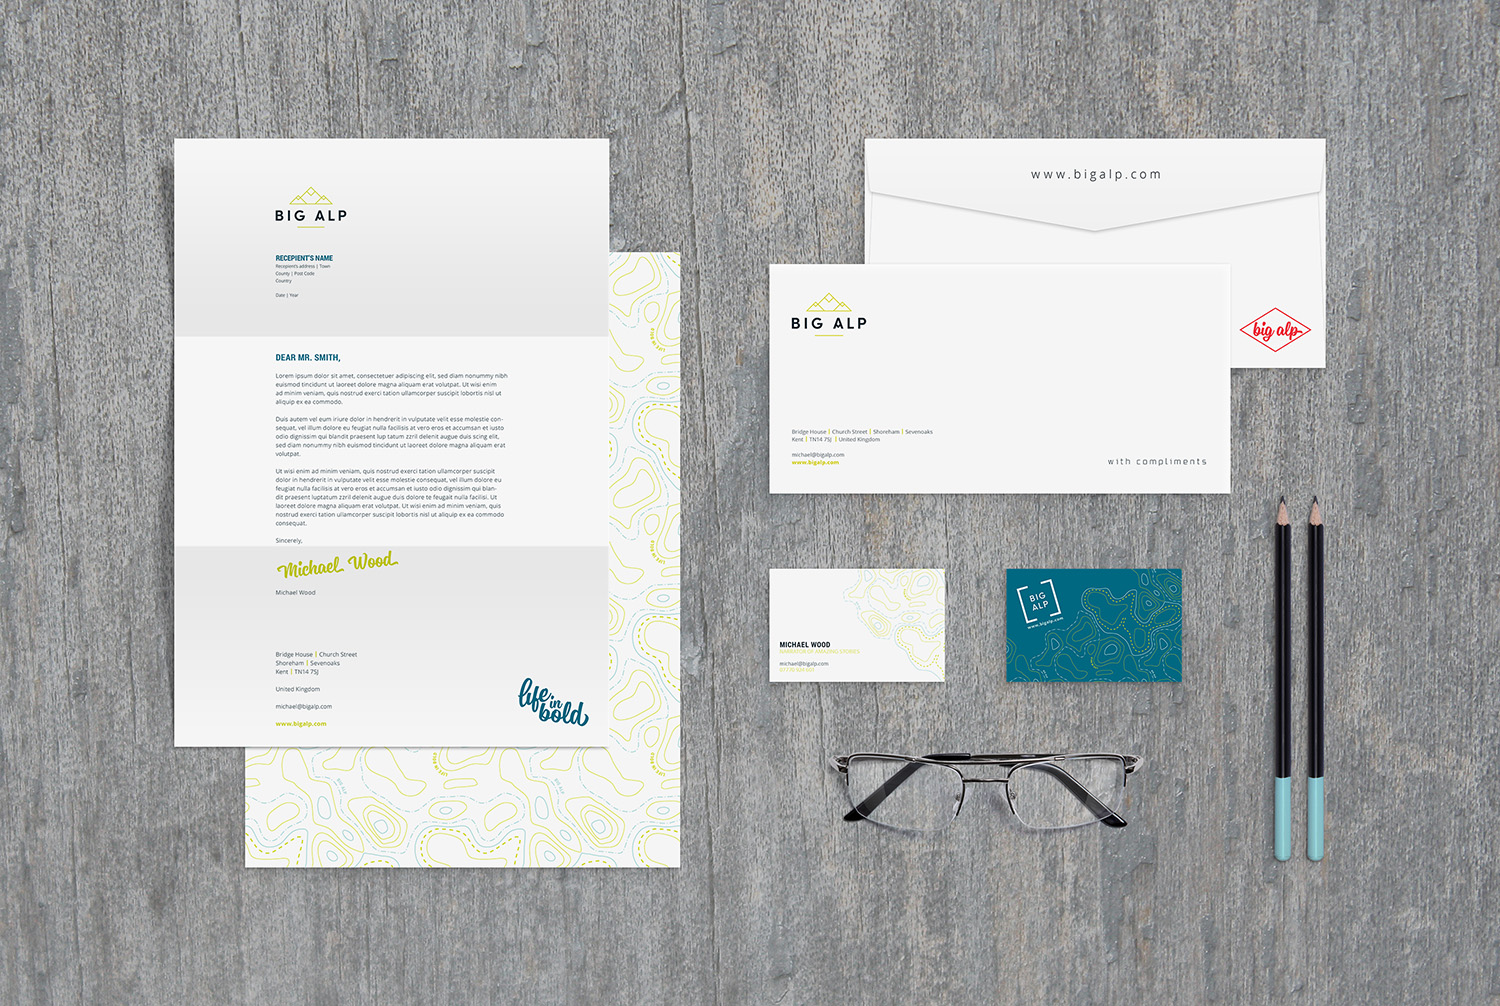 Branding and logo design for Big Alp by Ditto Creative branding agency Kent